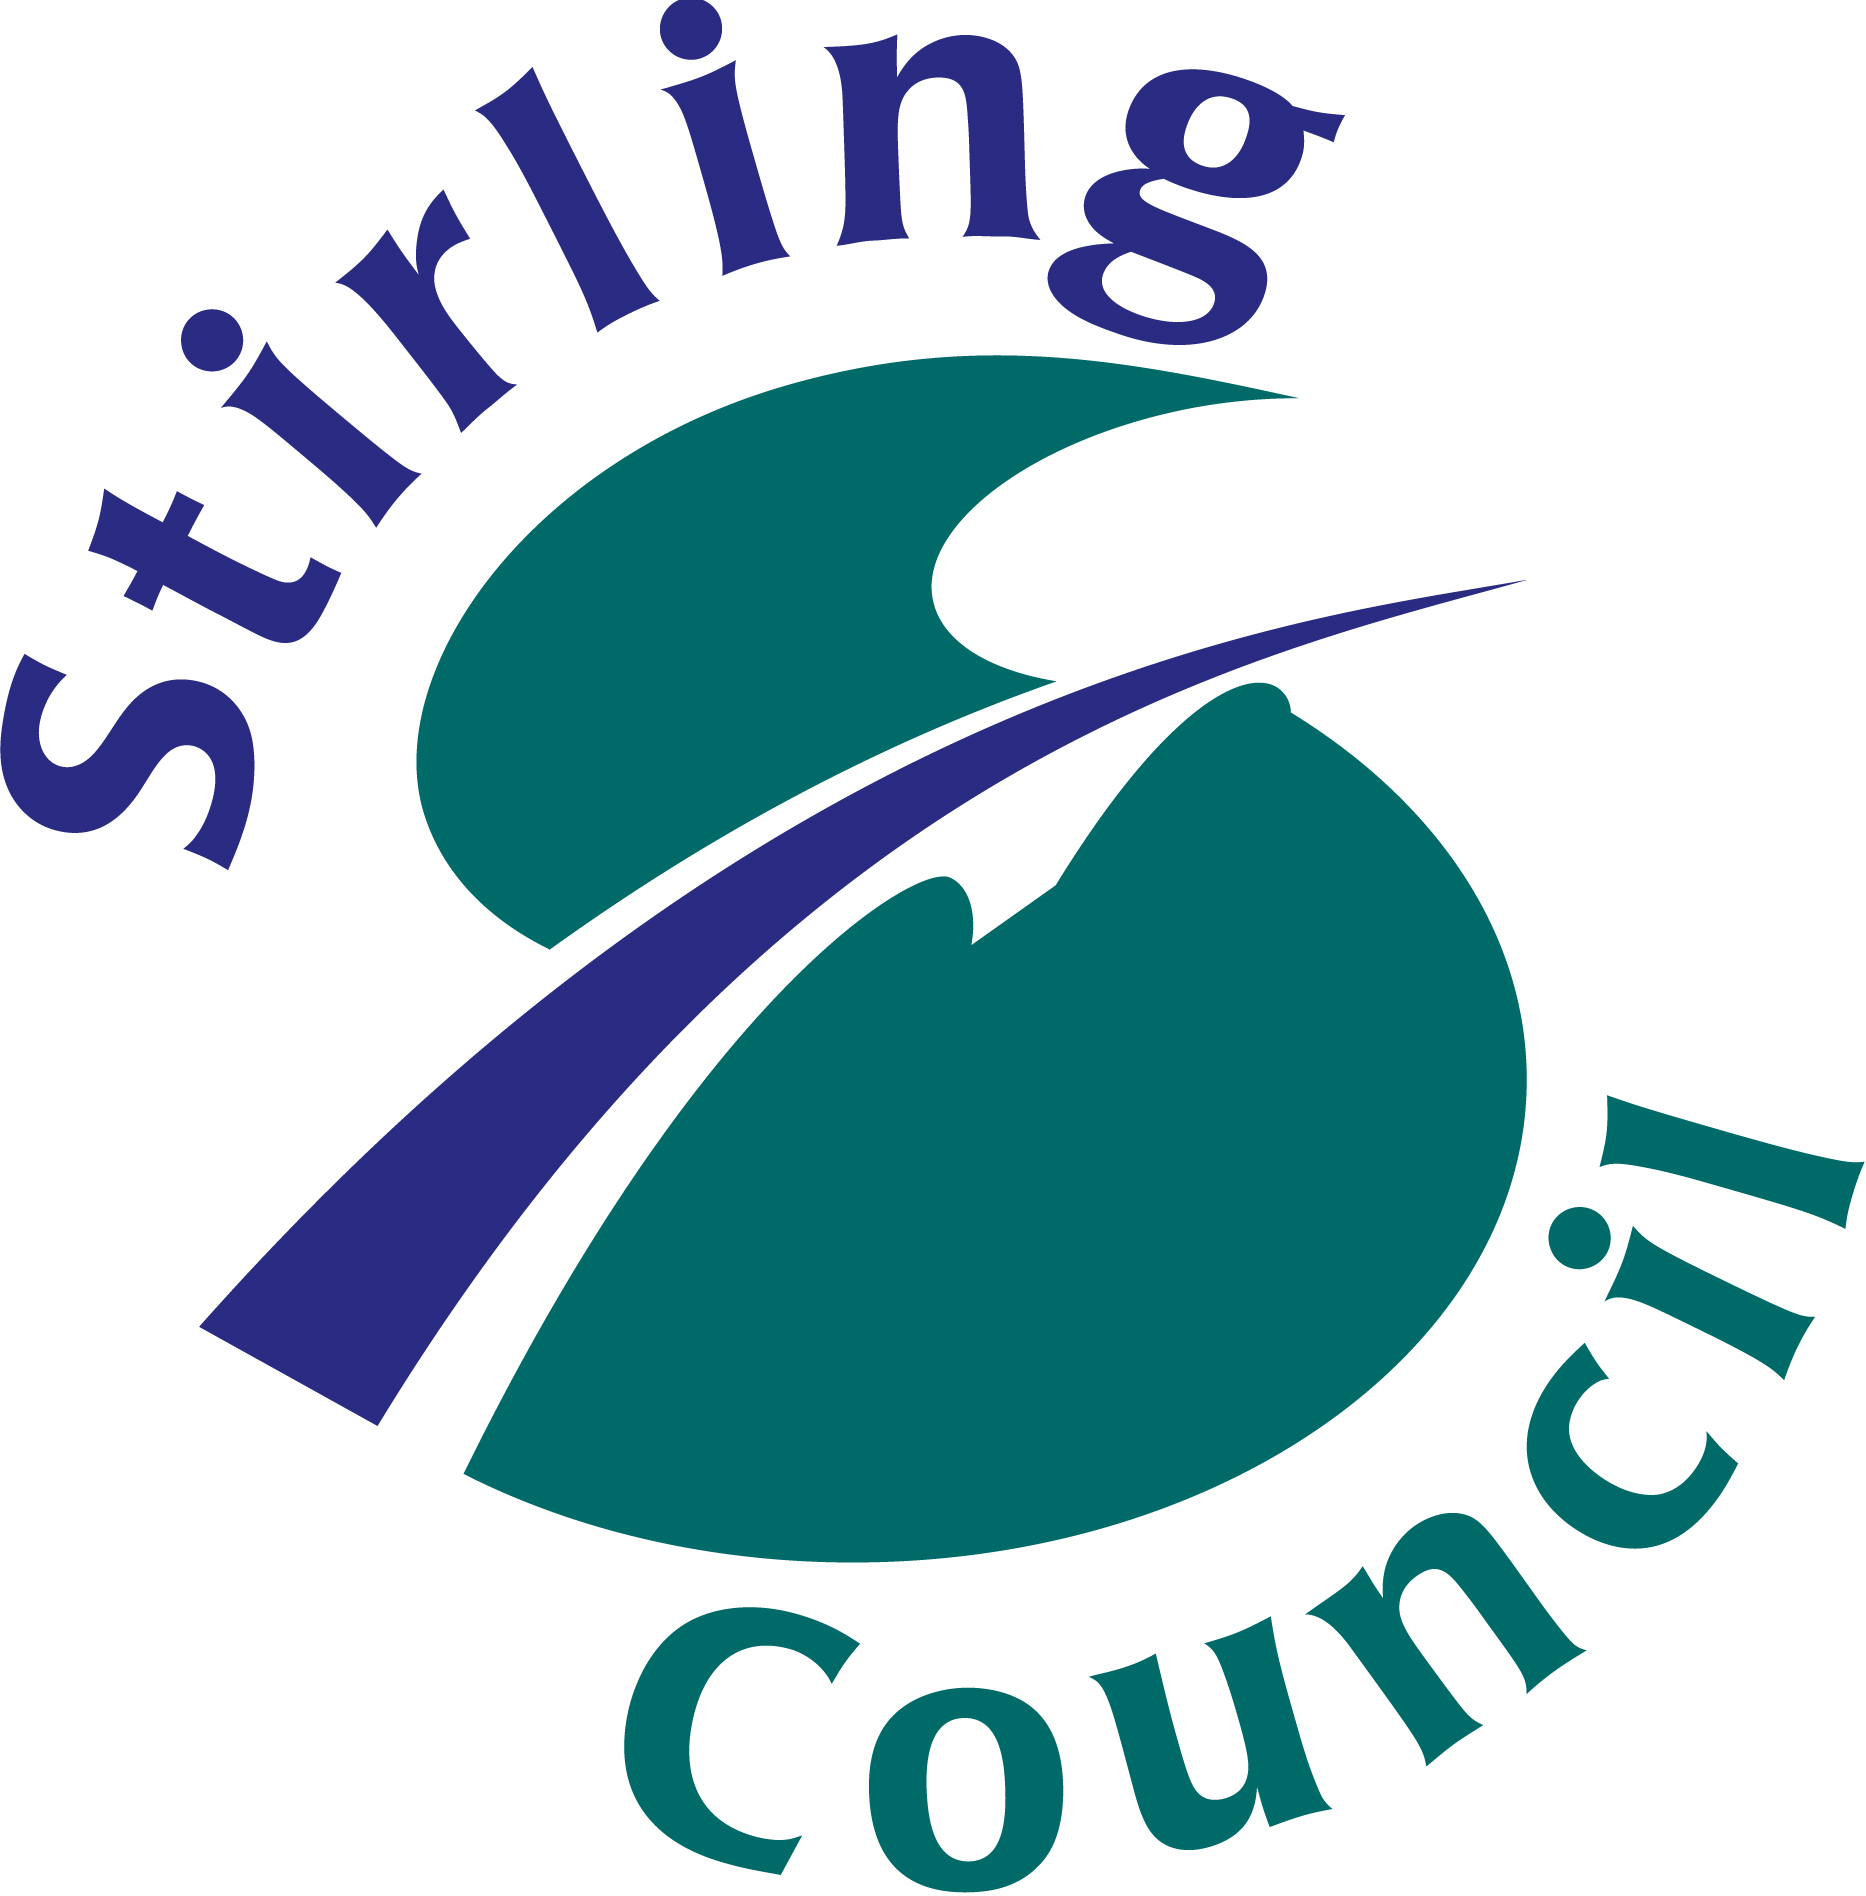 Stirling_Logo.jpeg